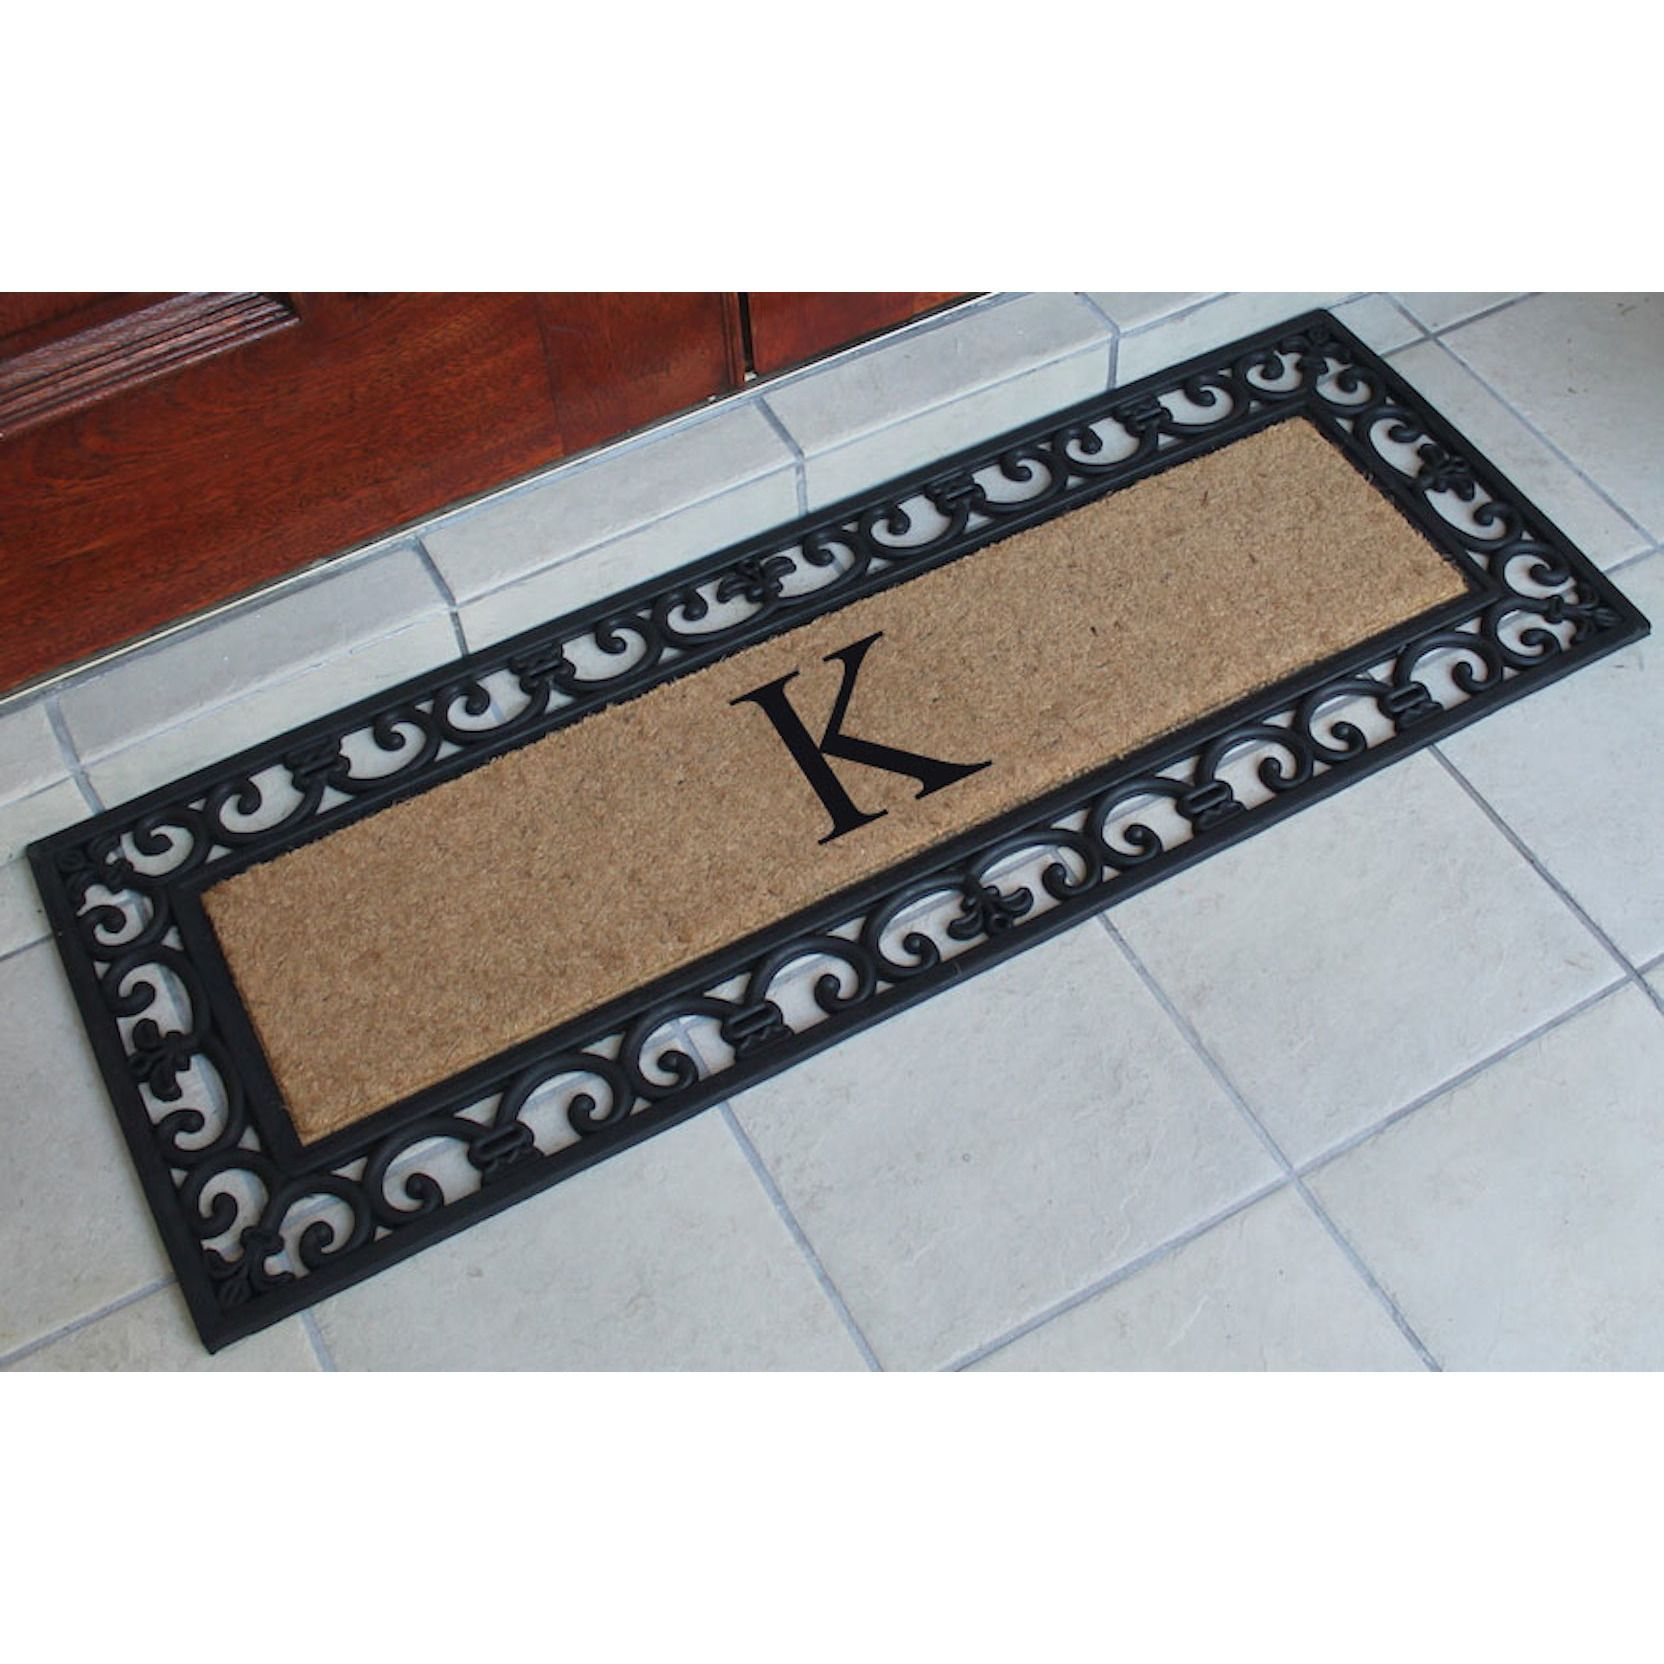 entry guides l on cheap quotations deals double first find line door at haywood shopping doormat monogrammed get impression doors